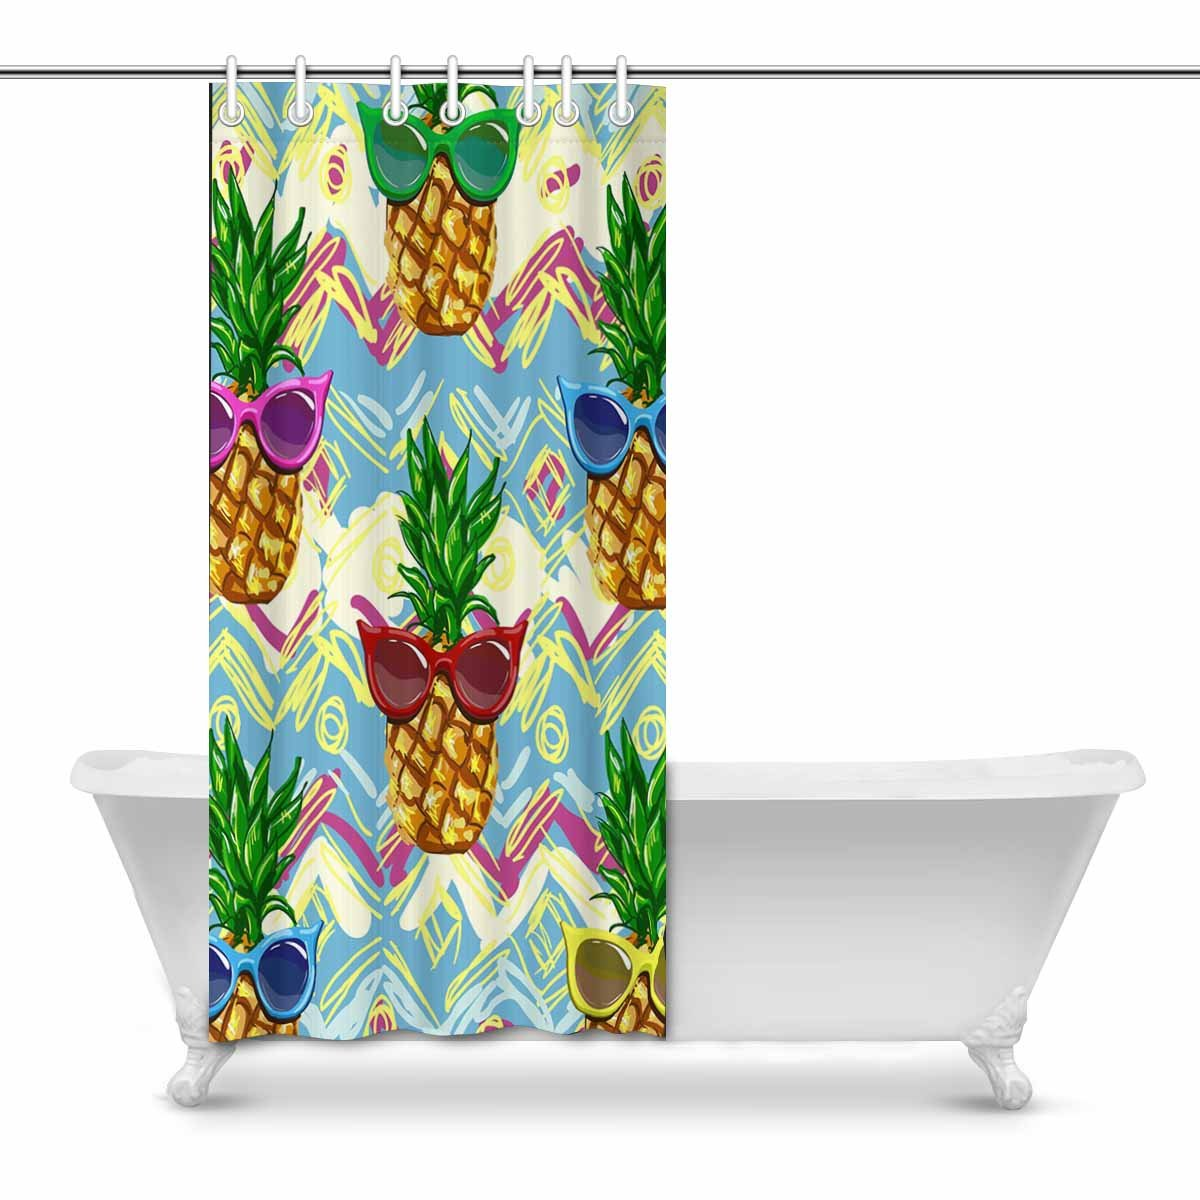 POP Pineapple Bathroom Decor Shower Curtain Set 9x9 inch